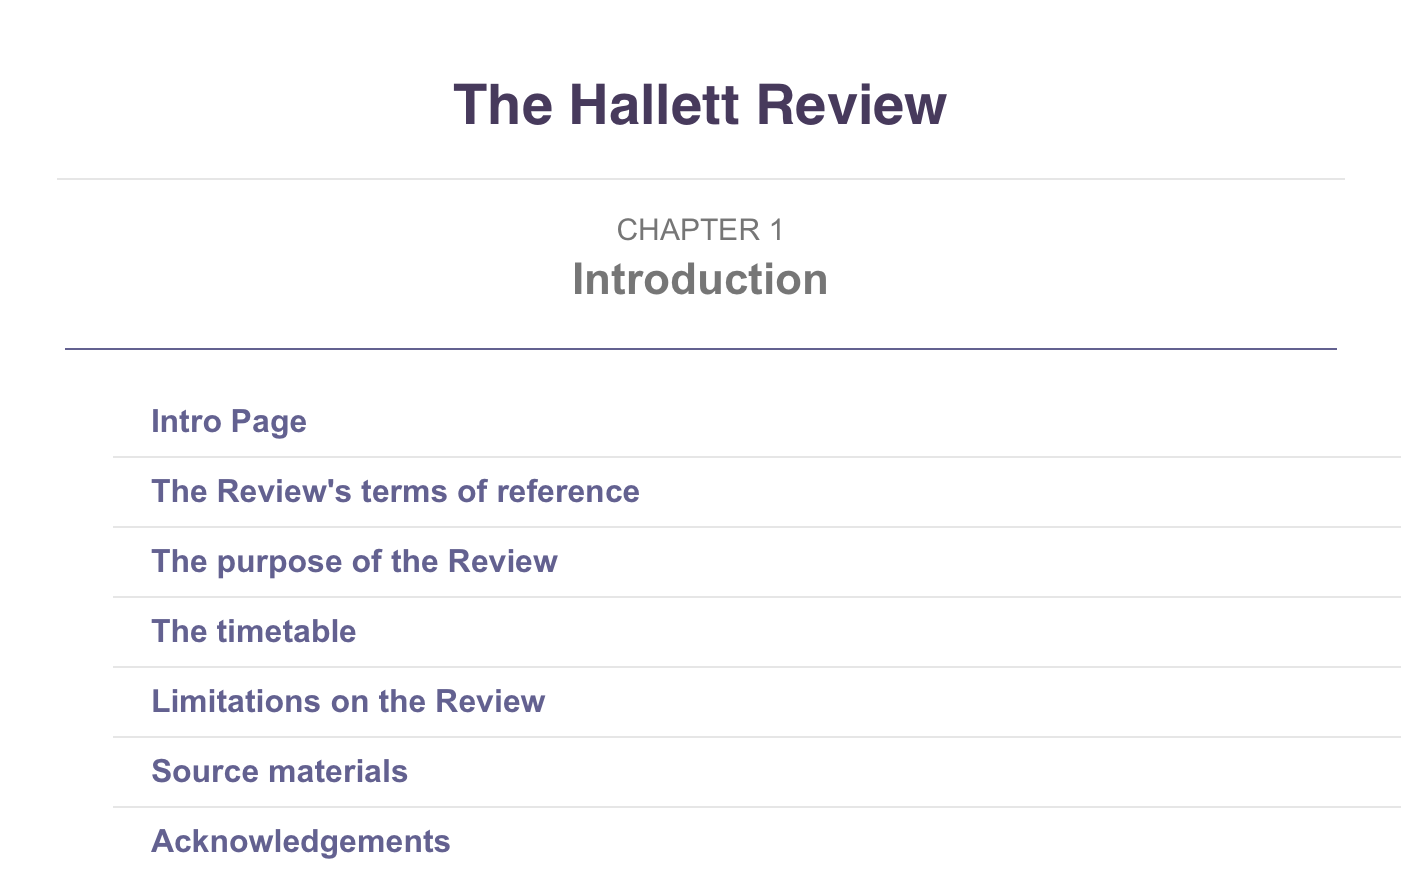 The Independent Hallett Review